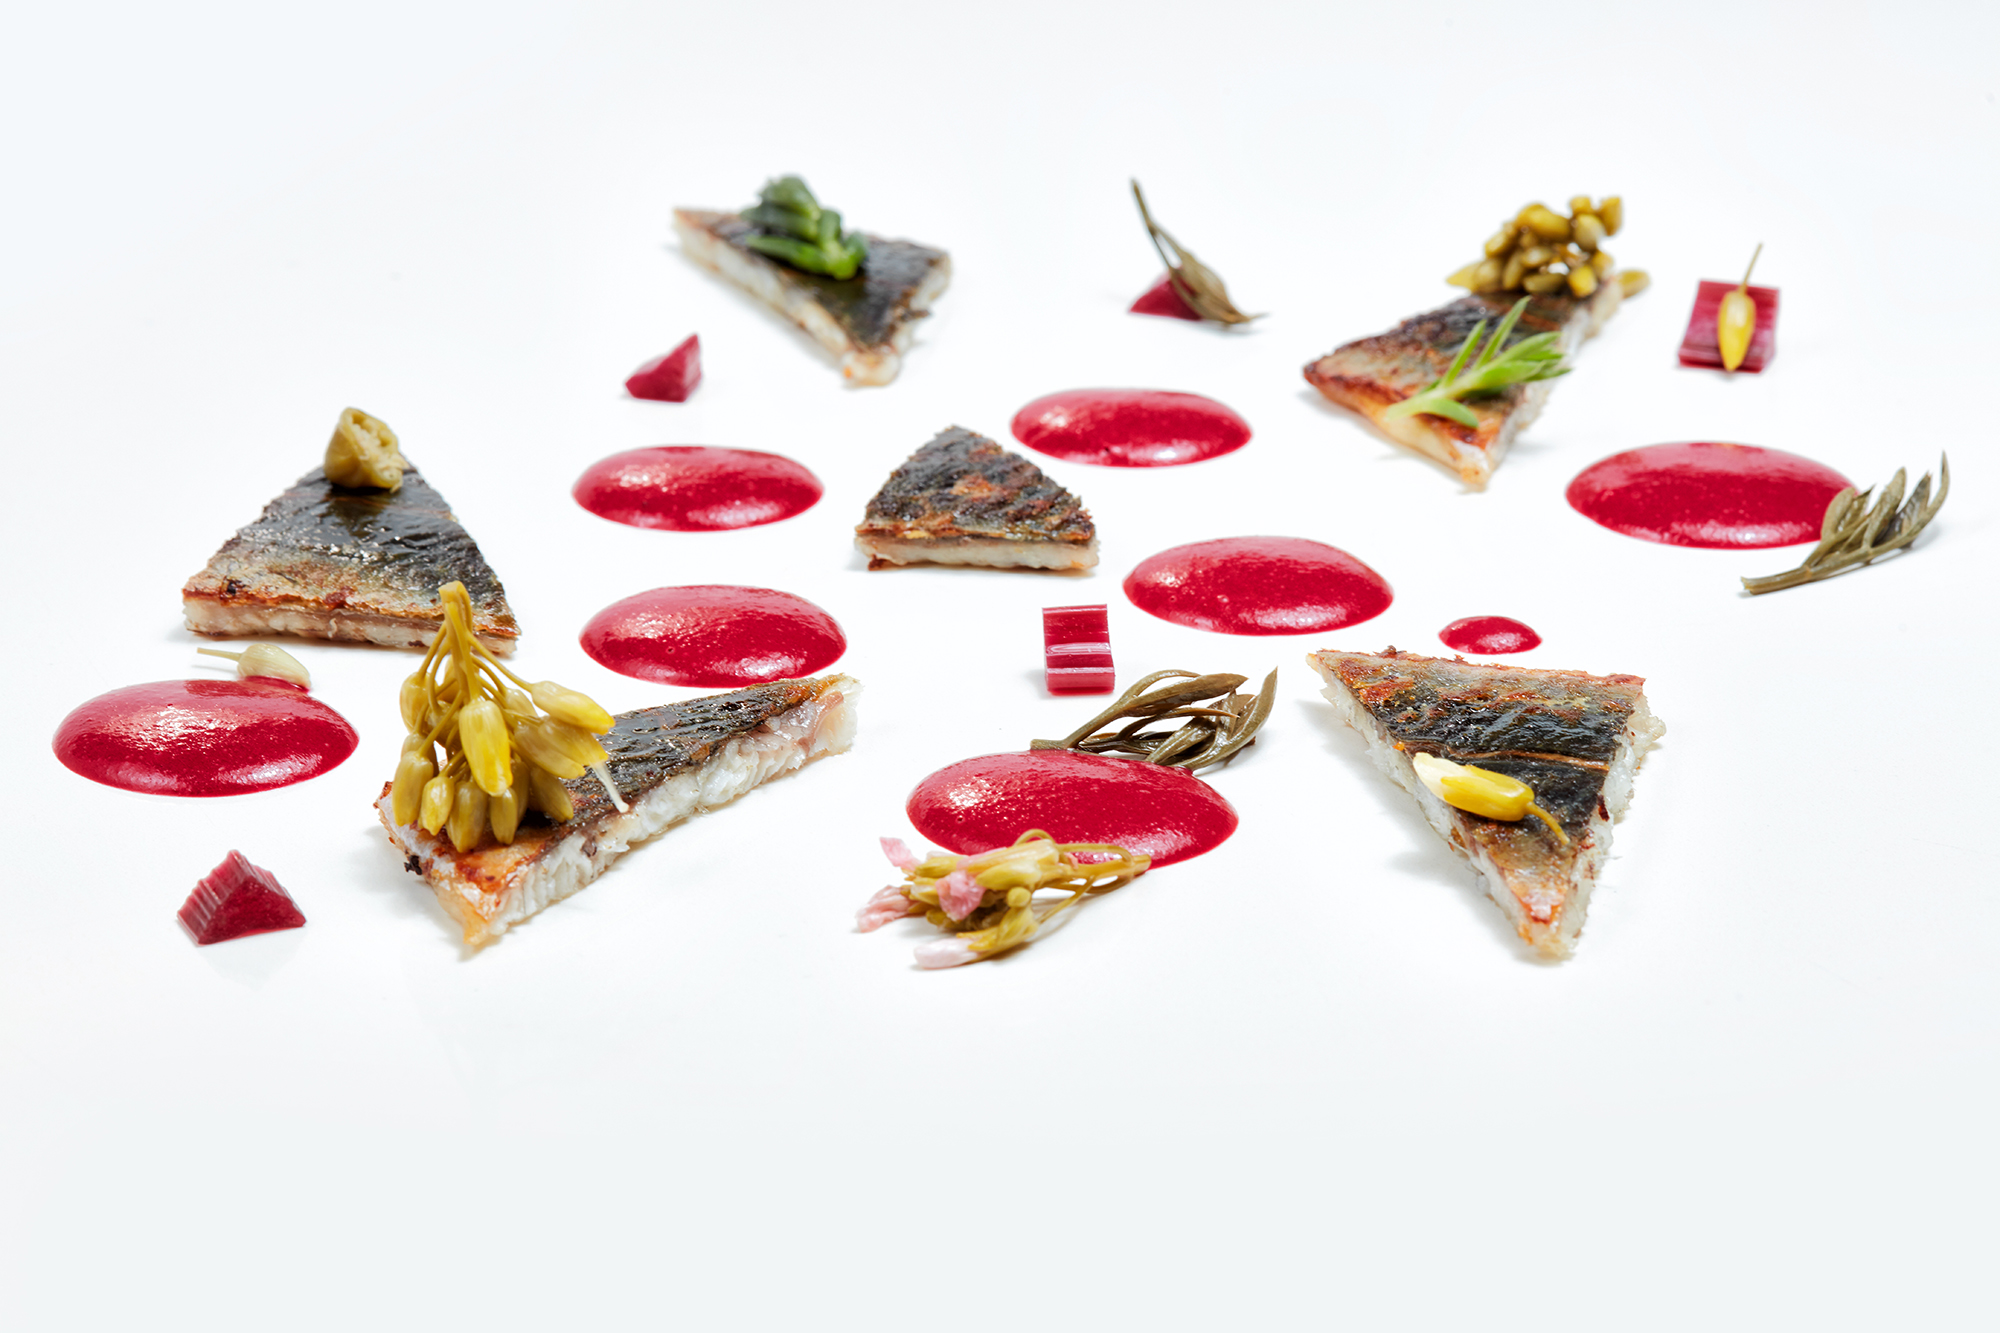 Eel and beet with pickled sprouts